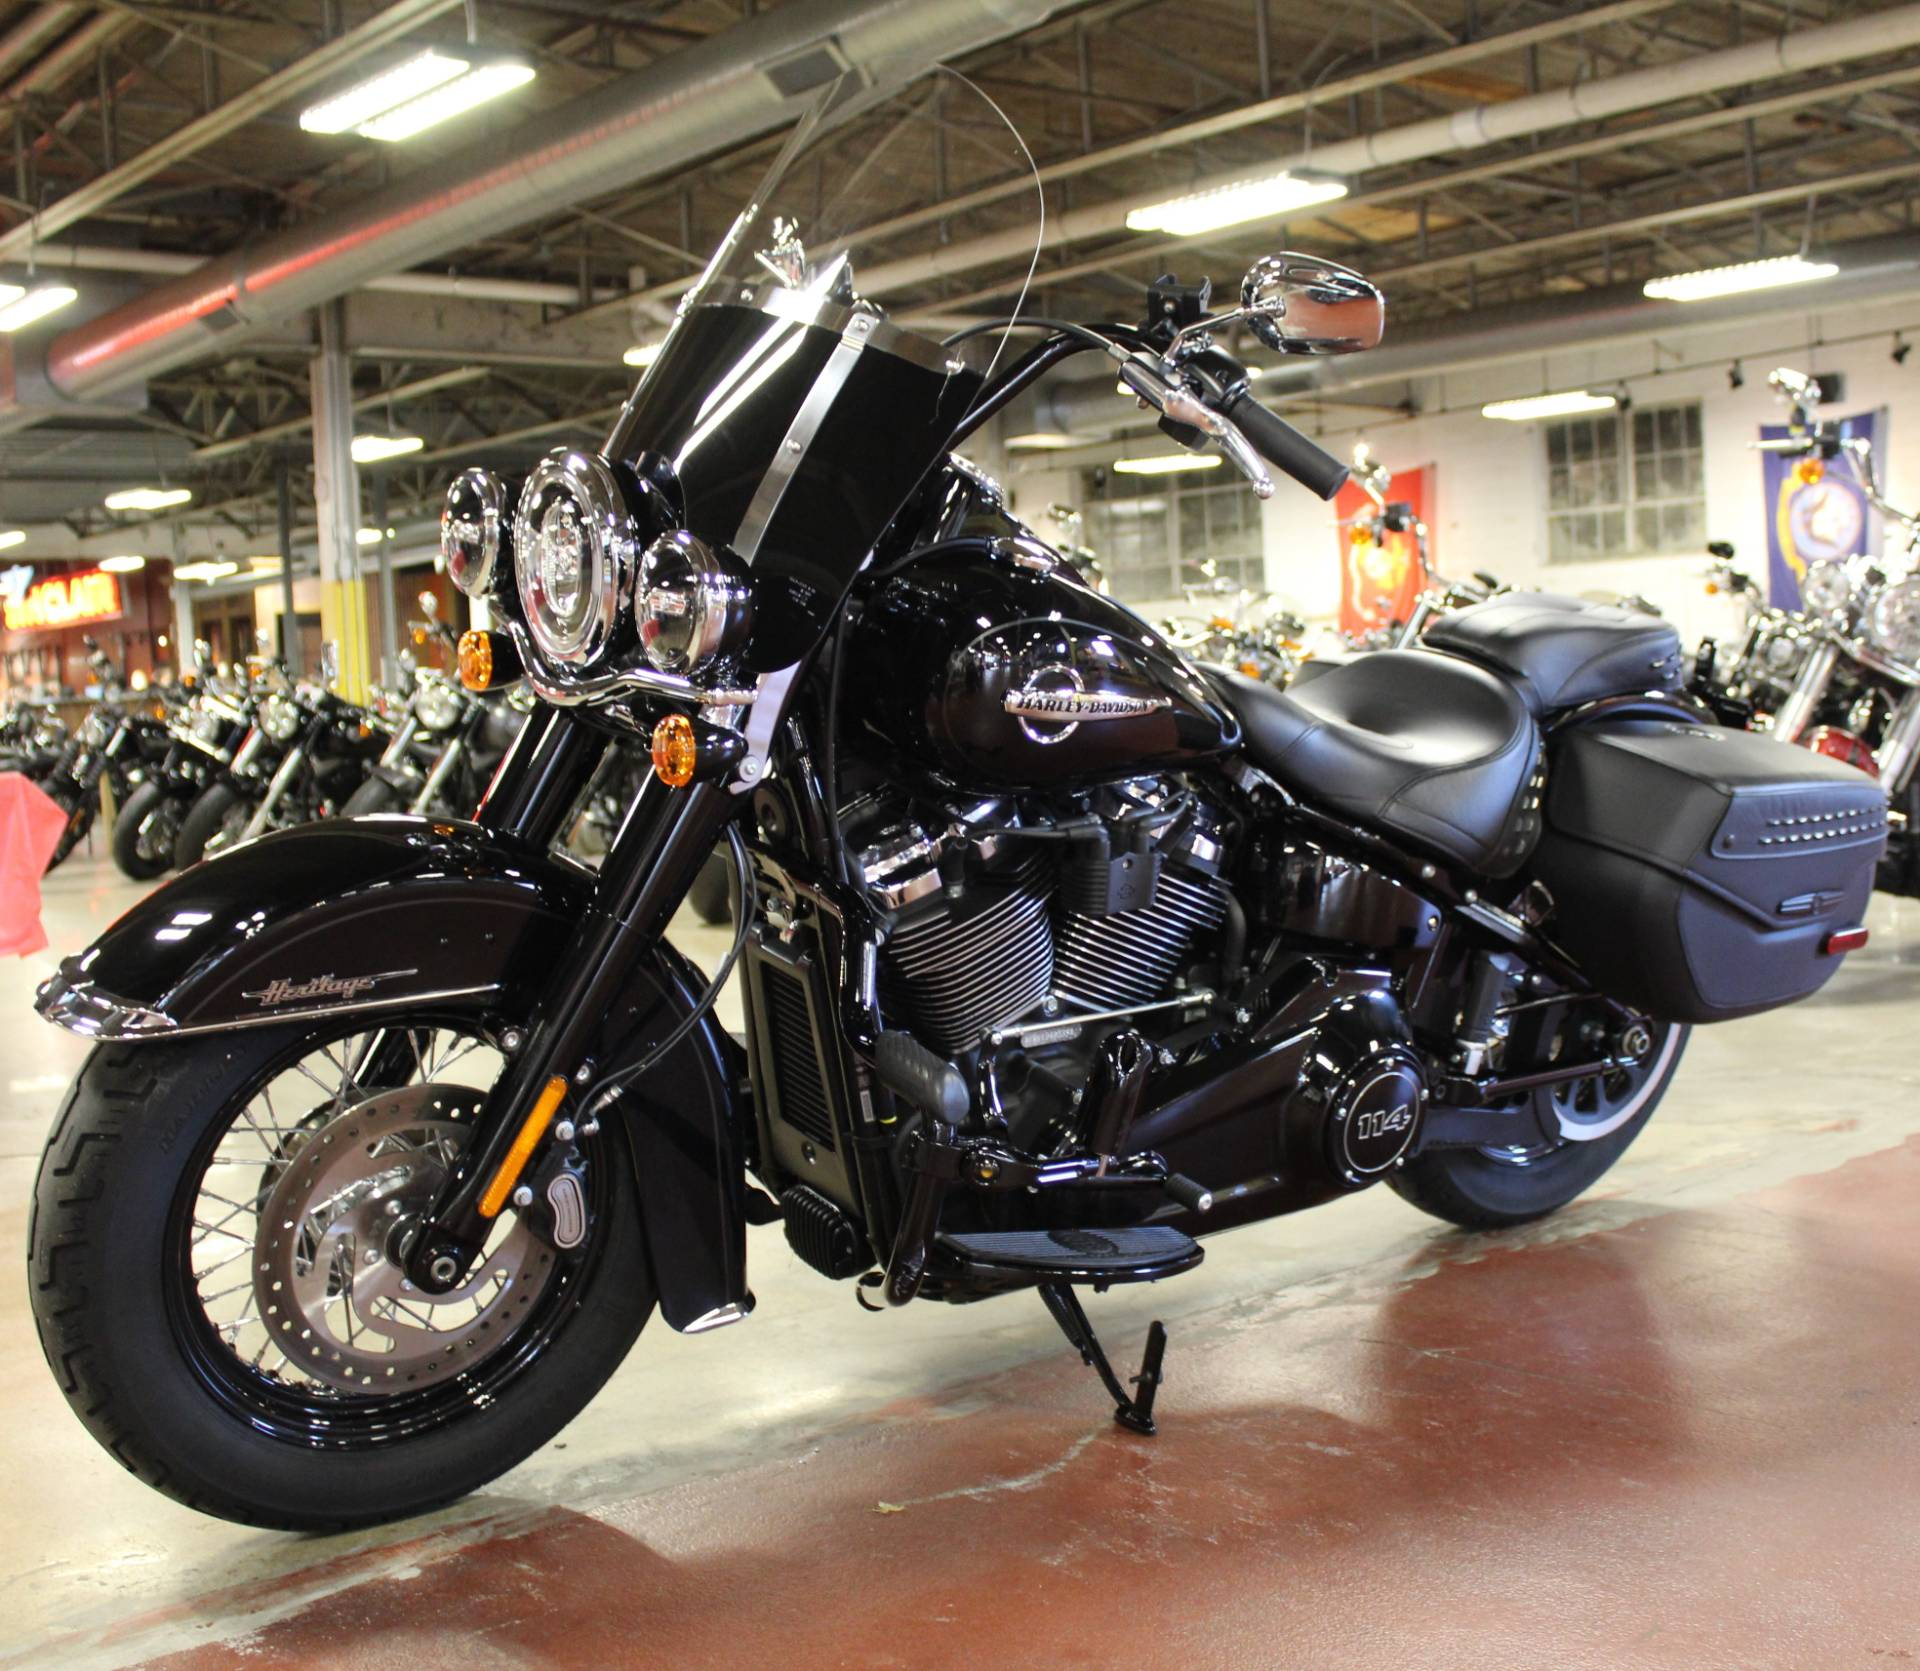 2019 Harley-Davidson Heritage Classic 114 in New London, Connecticut - Photo 4